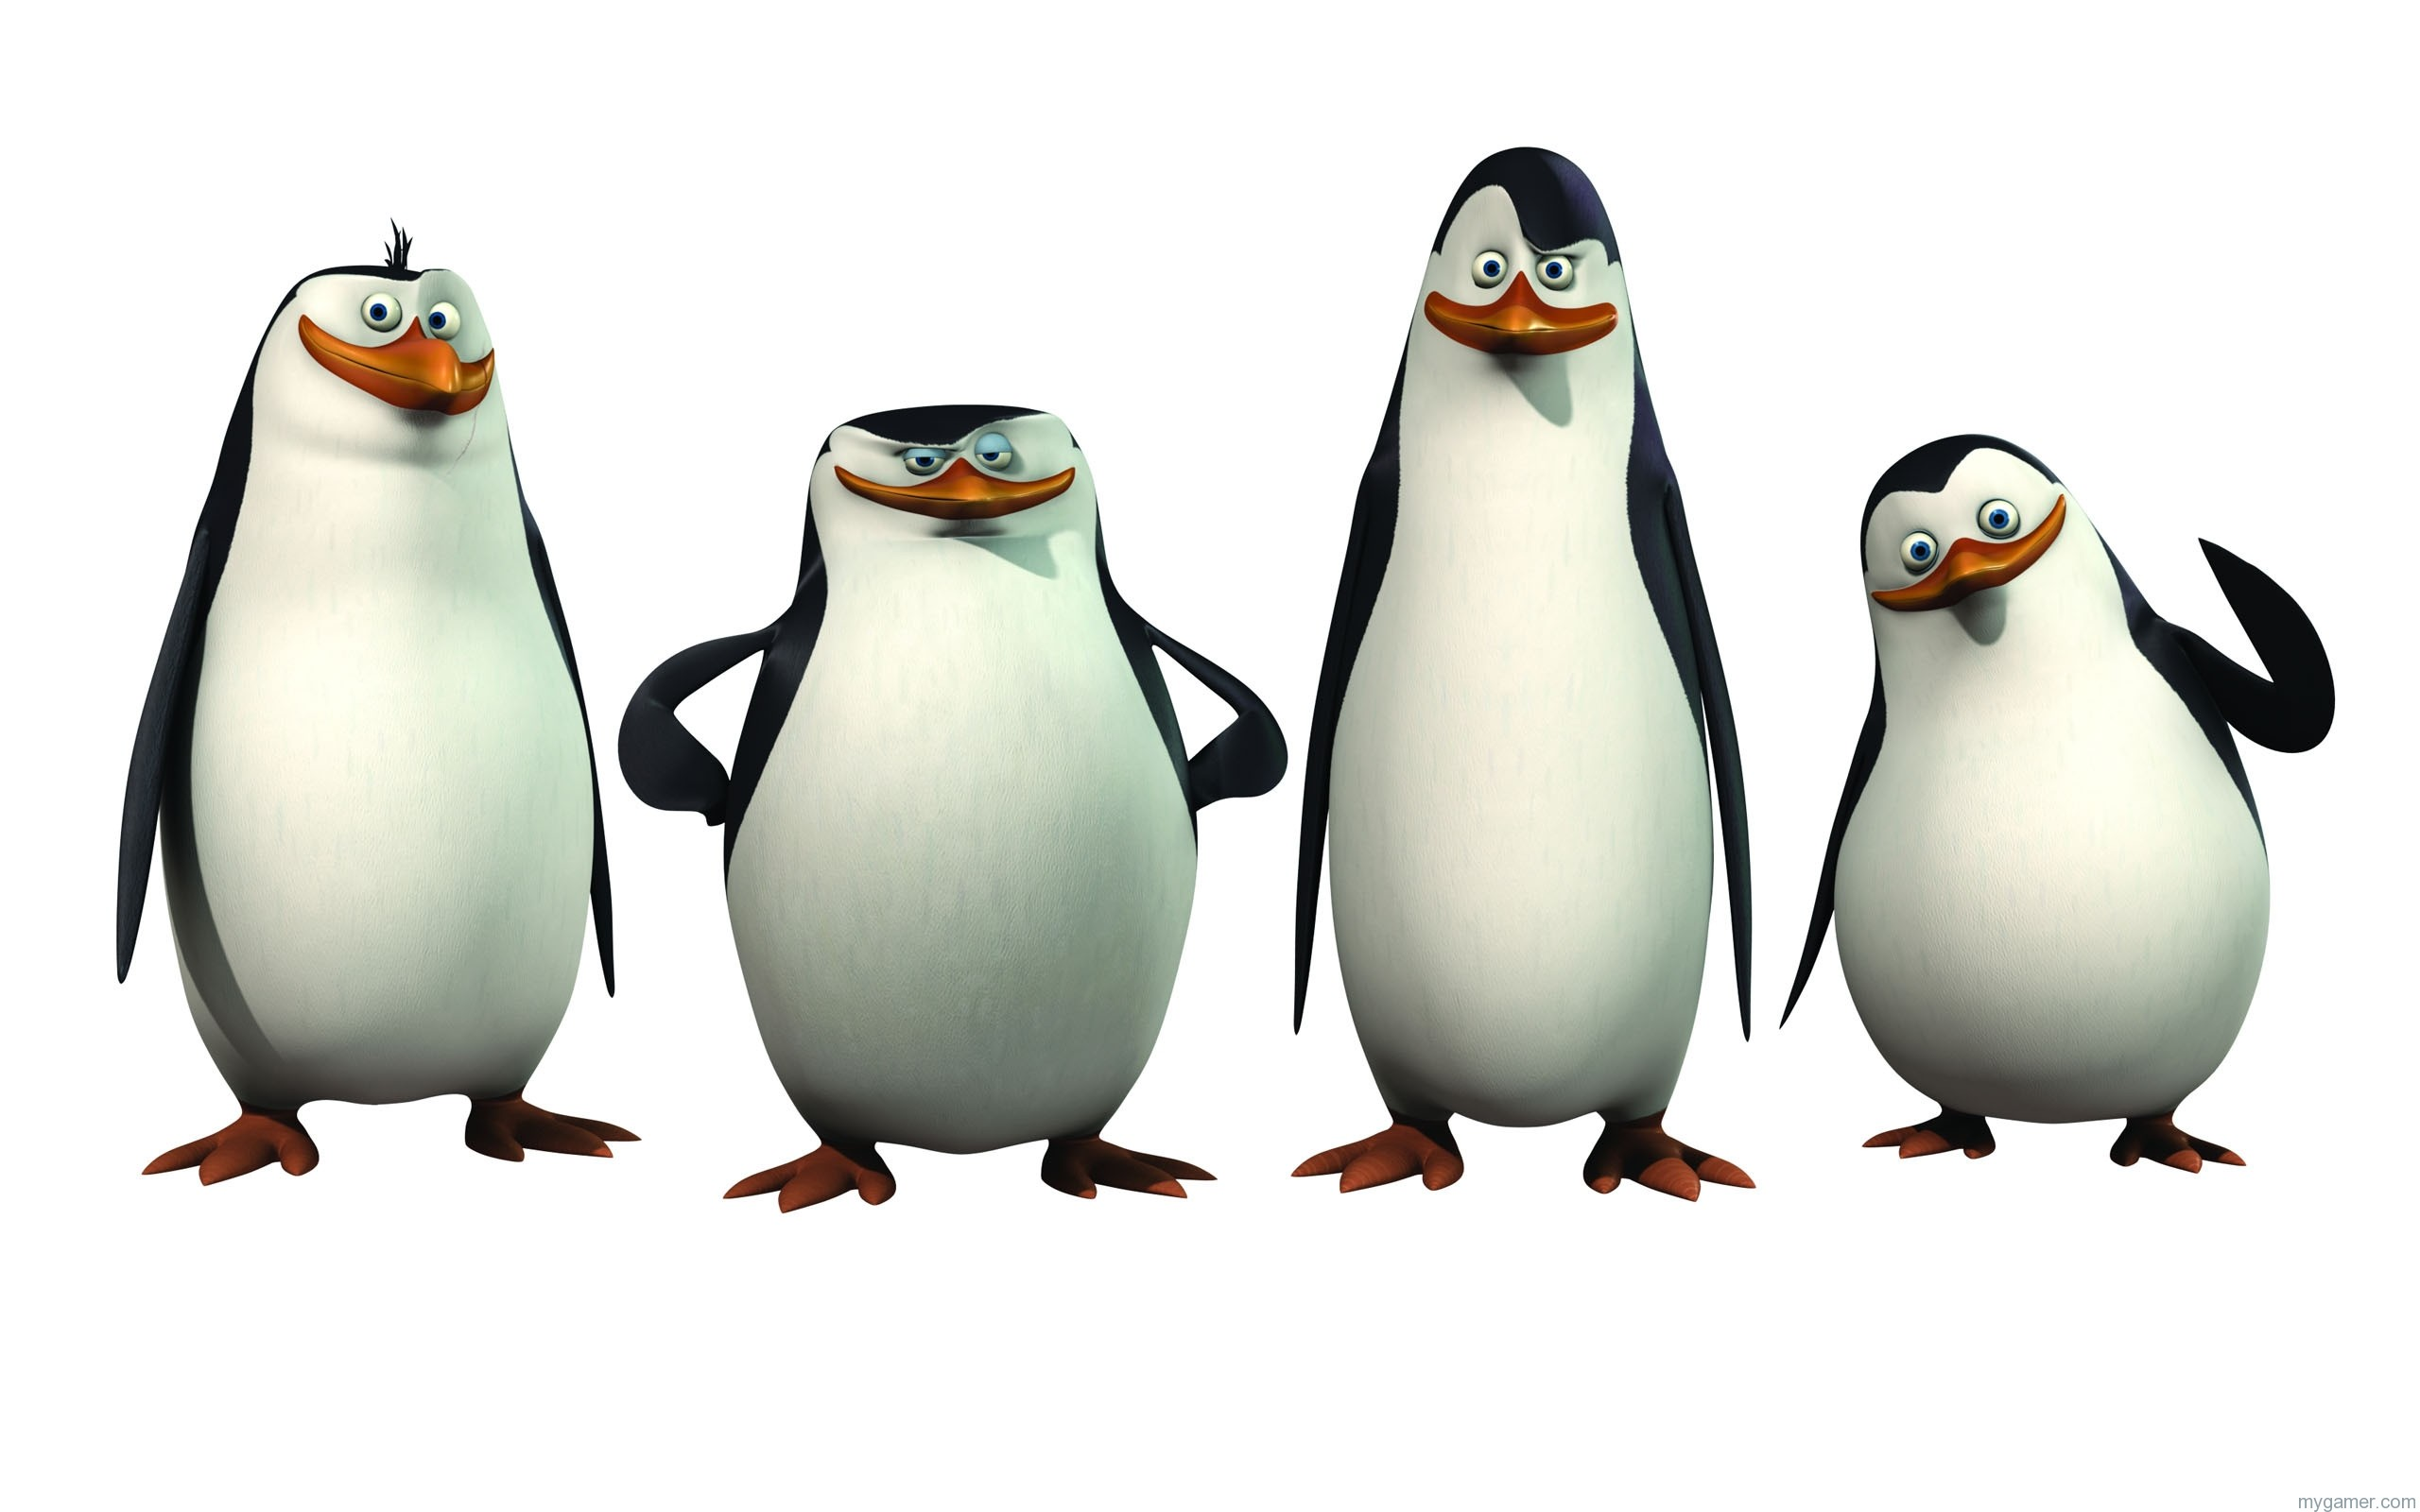 Penguins Are Coming to Nintendo Consoles Nov 25th Penguins Are Coming to Nintendo Consoles Nov 25th penguins